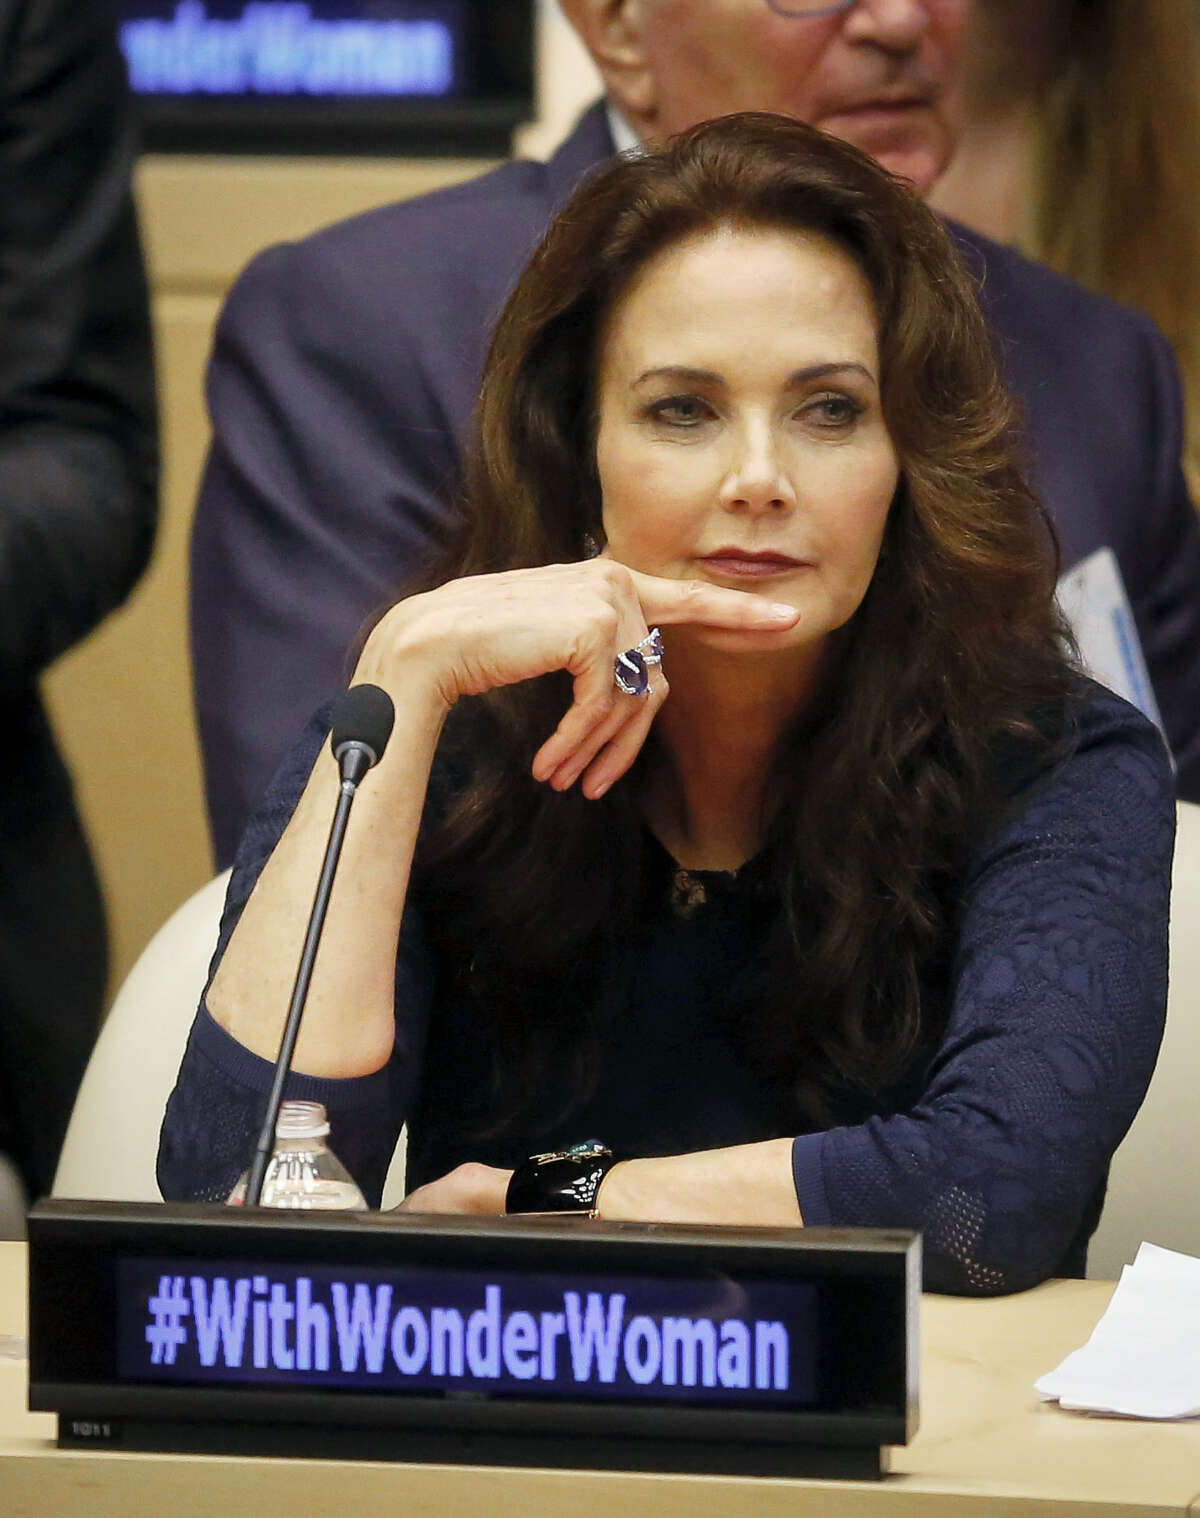 """In this Oct. 21, 2016 photo, Lynda Carter, who played Wonder Woman on television, listens during a U.N. meeting to designate Wonder Woman as an """"Honorary Ambassador for the Empowerment of Women and Girls,"""" at U.N. headquarters. Rhéal LeBlanc, the head of press and external relations, said Tuesday, Dec. 13, 2016 the appointment of Wonder Woman as an Honorary Ambassador for the Empowerment of Woman and Girls would end this week, a move that comes less than two months after a splashy ceremony at the U.N."""